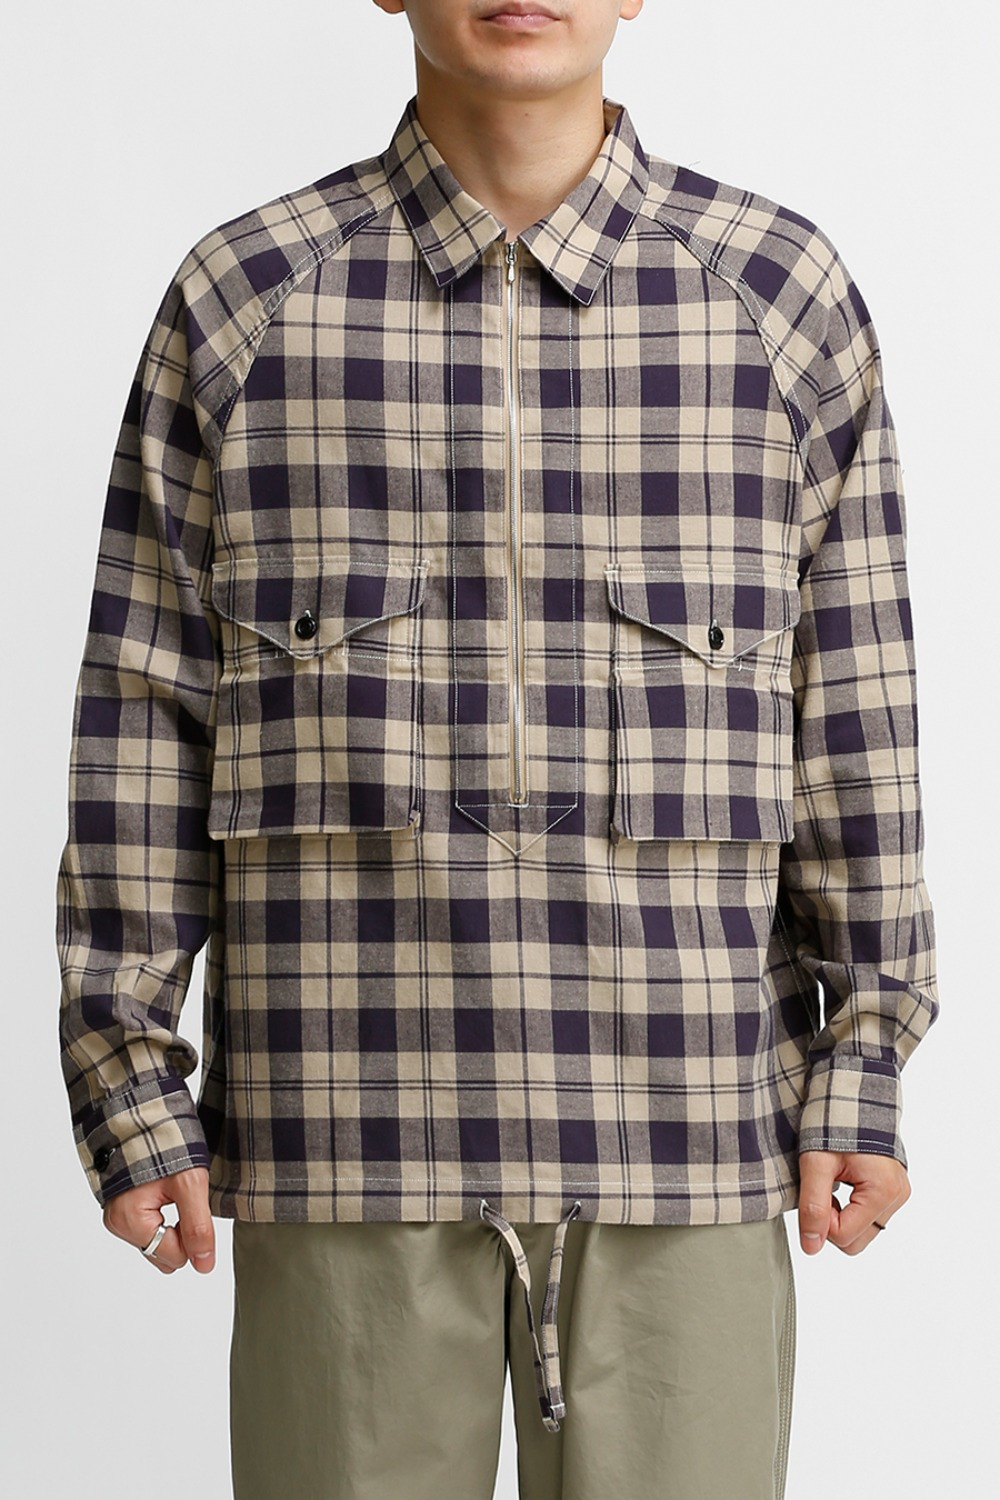 SCOUT PULLOVER SHIRT / PURPLE & IVORY CHECK